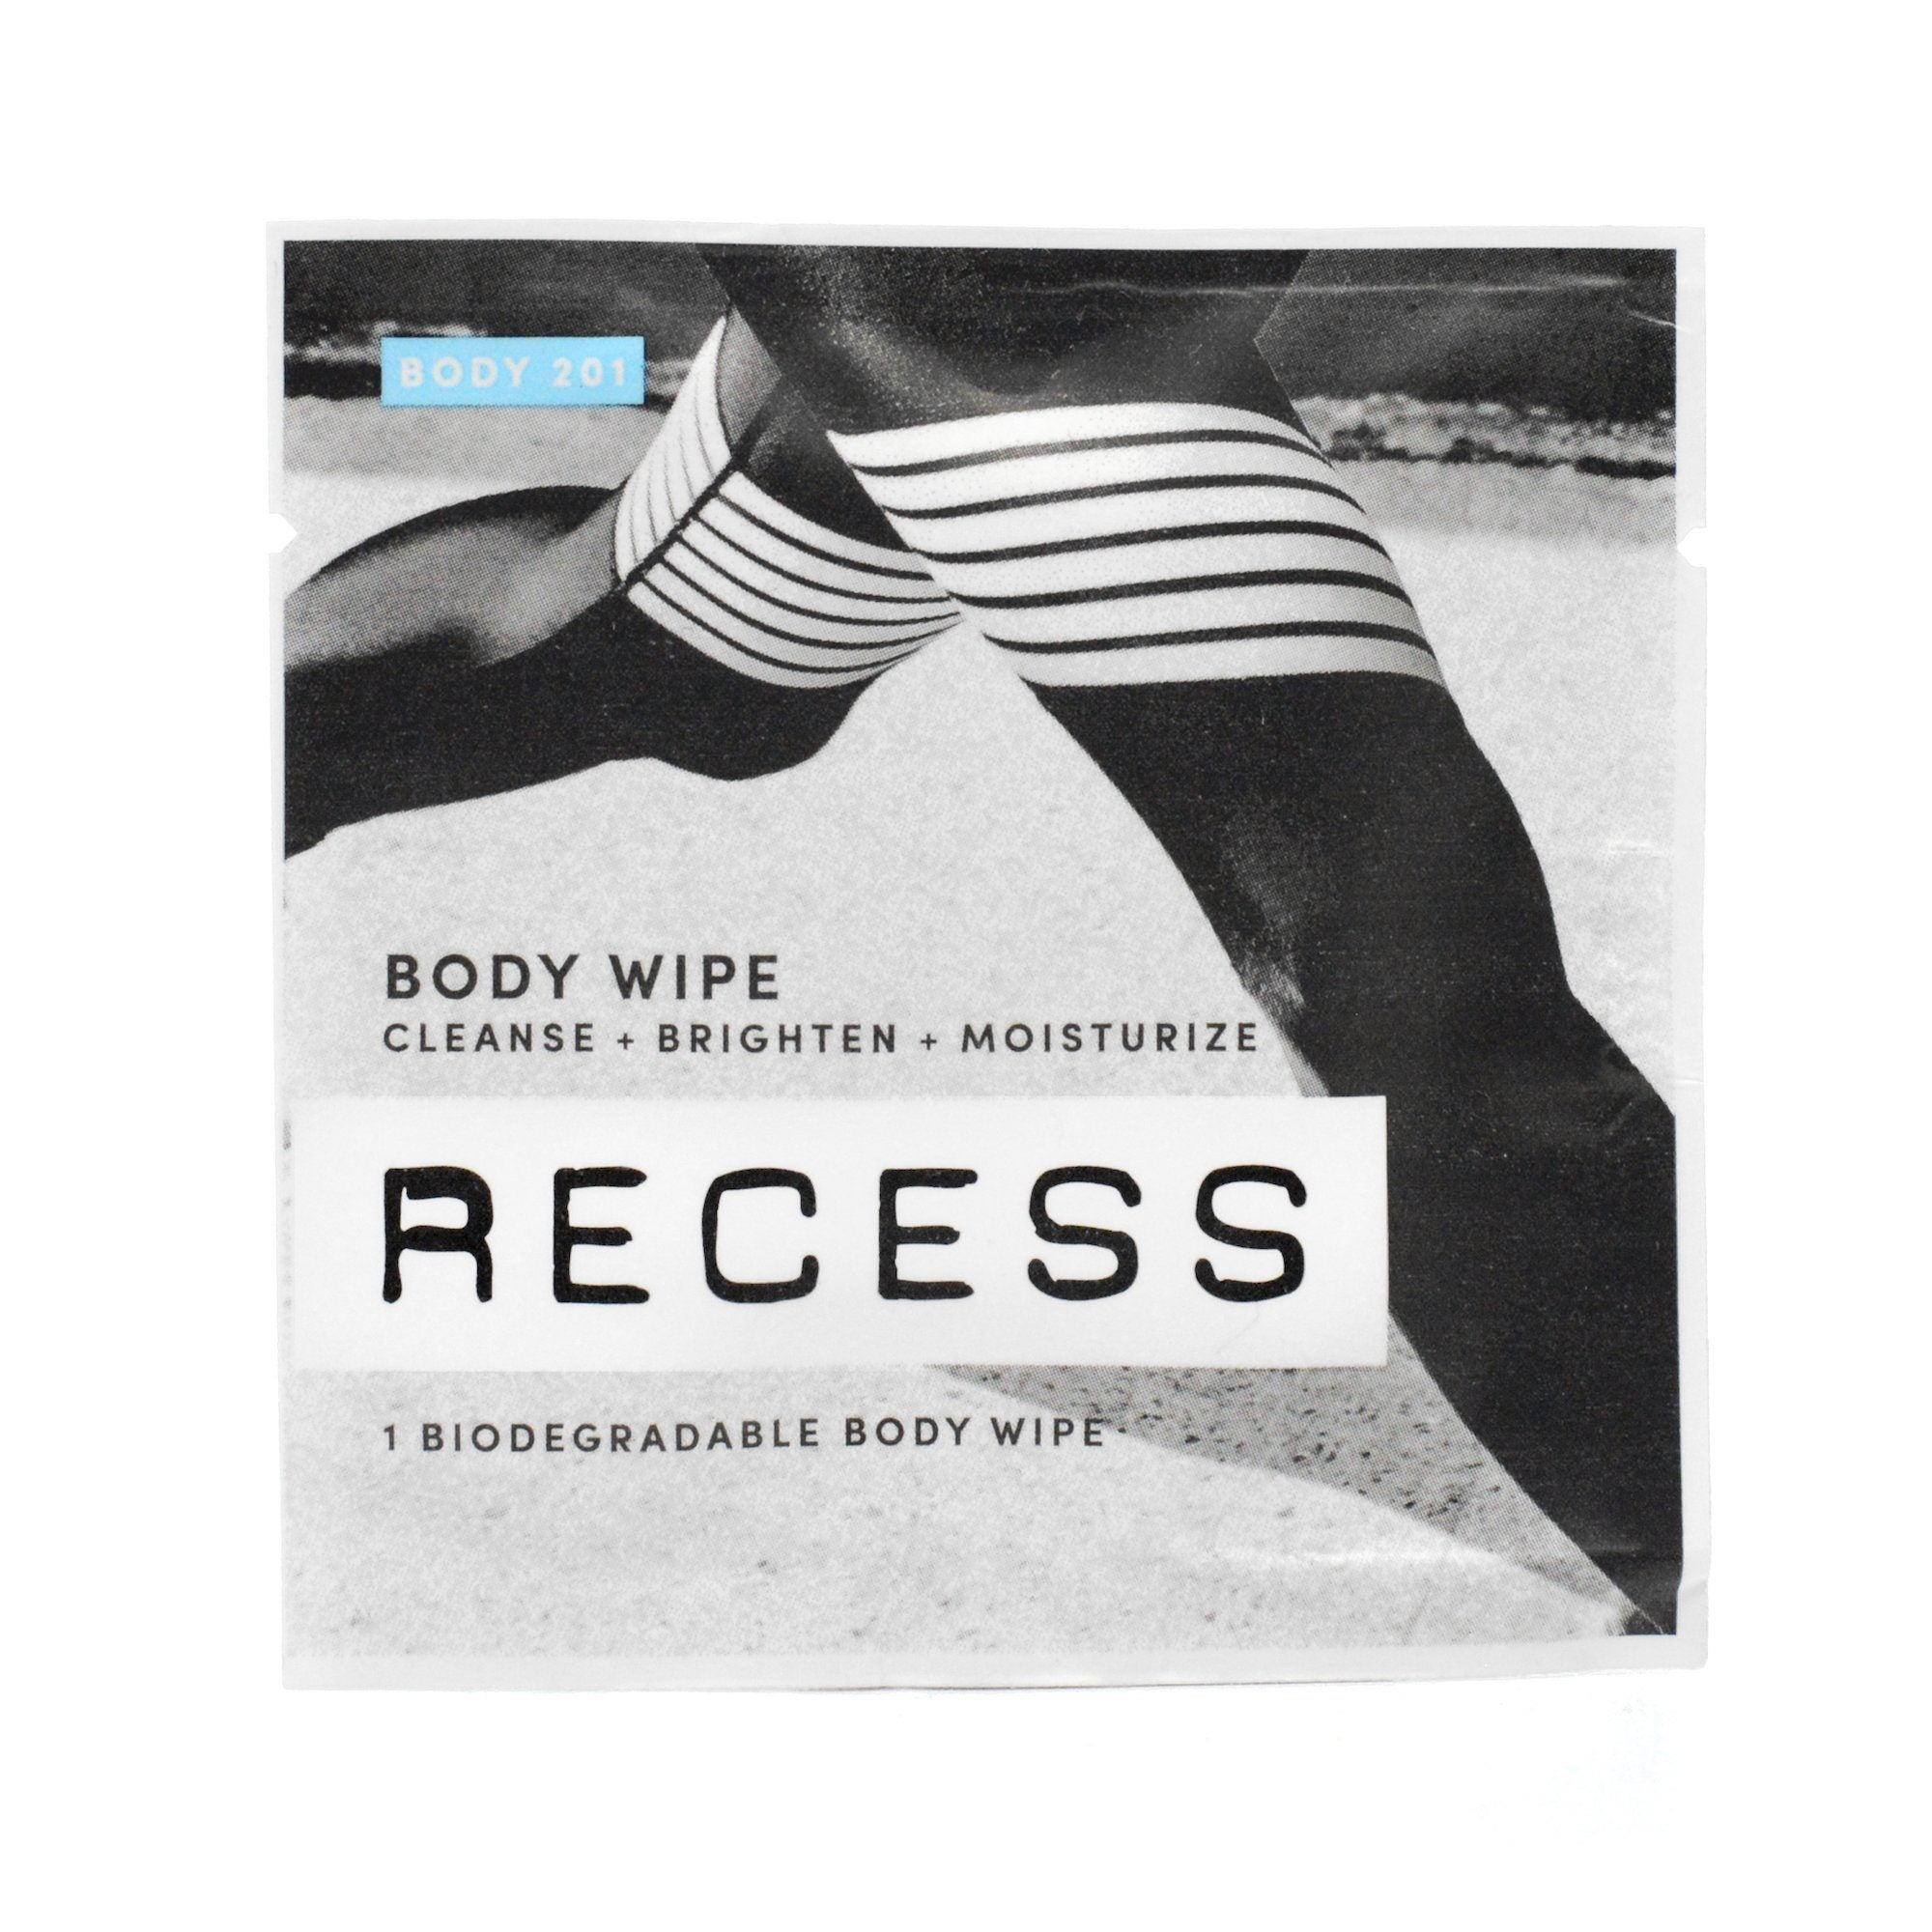 BODY 201: Body Wipes (Pack of 15)